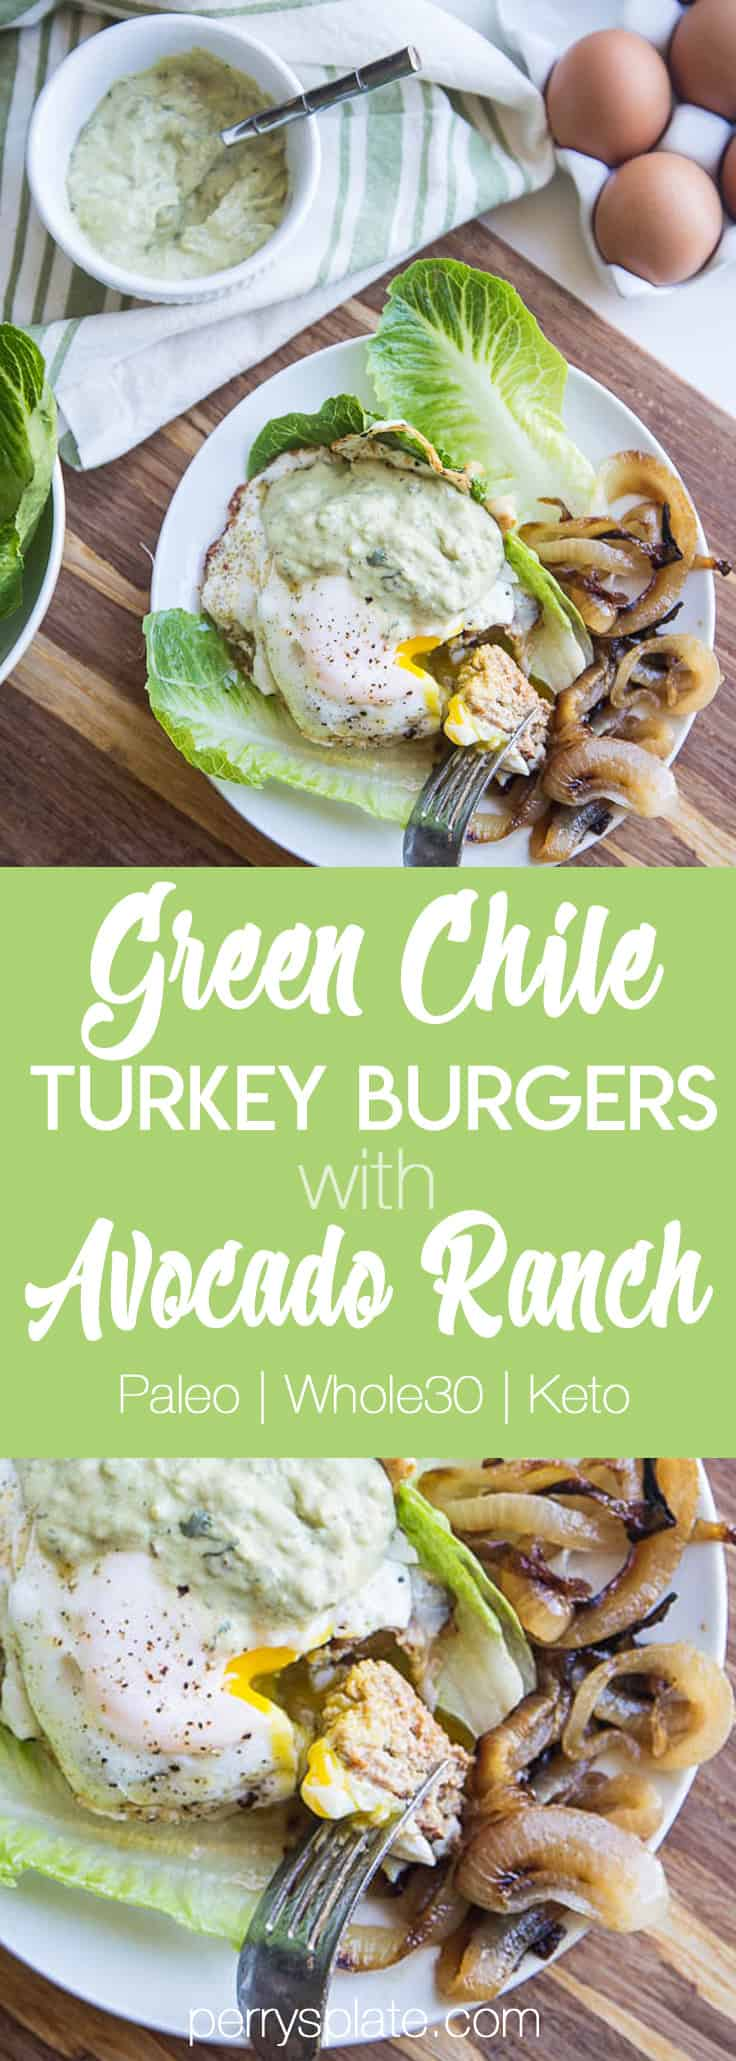 Green Chile Turkey Burgers with Avocado-Ranch | Paleo recipes | Whole30 recipes | Keto recipes | Low-Carb Recipes | perrysplate.com